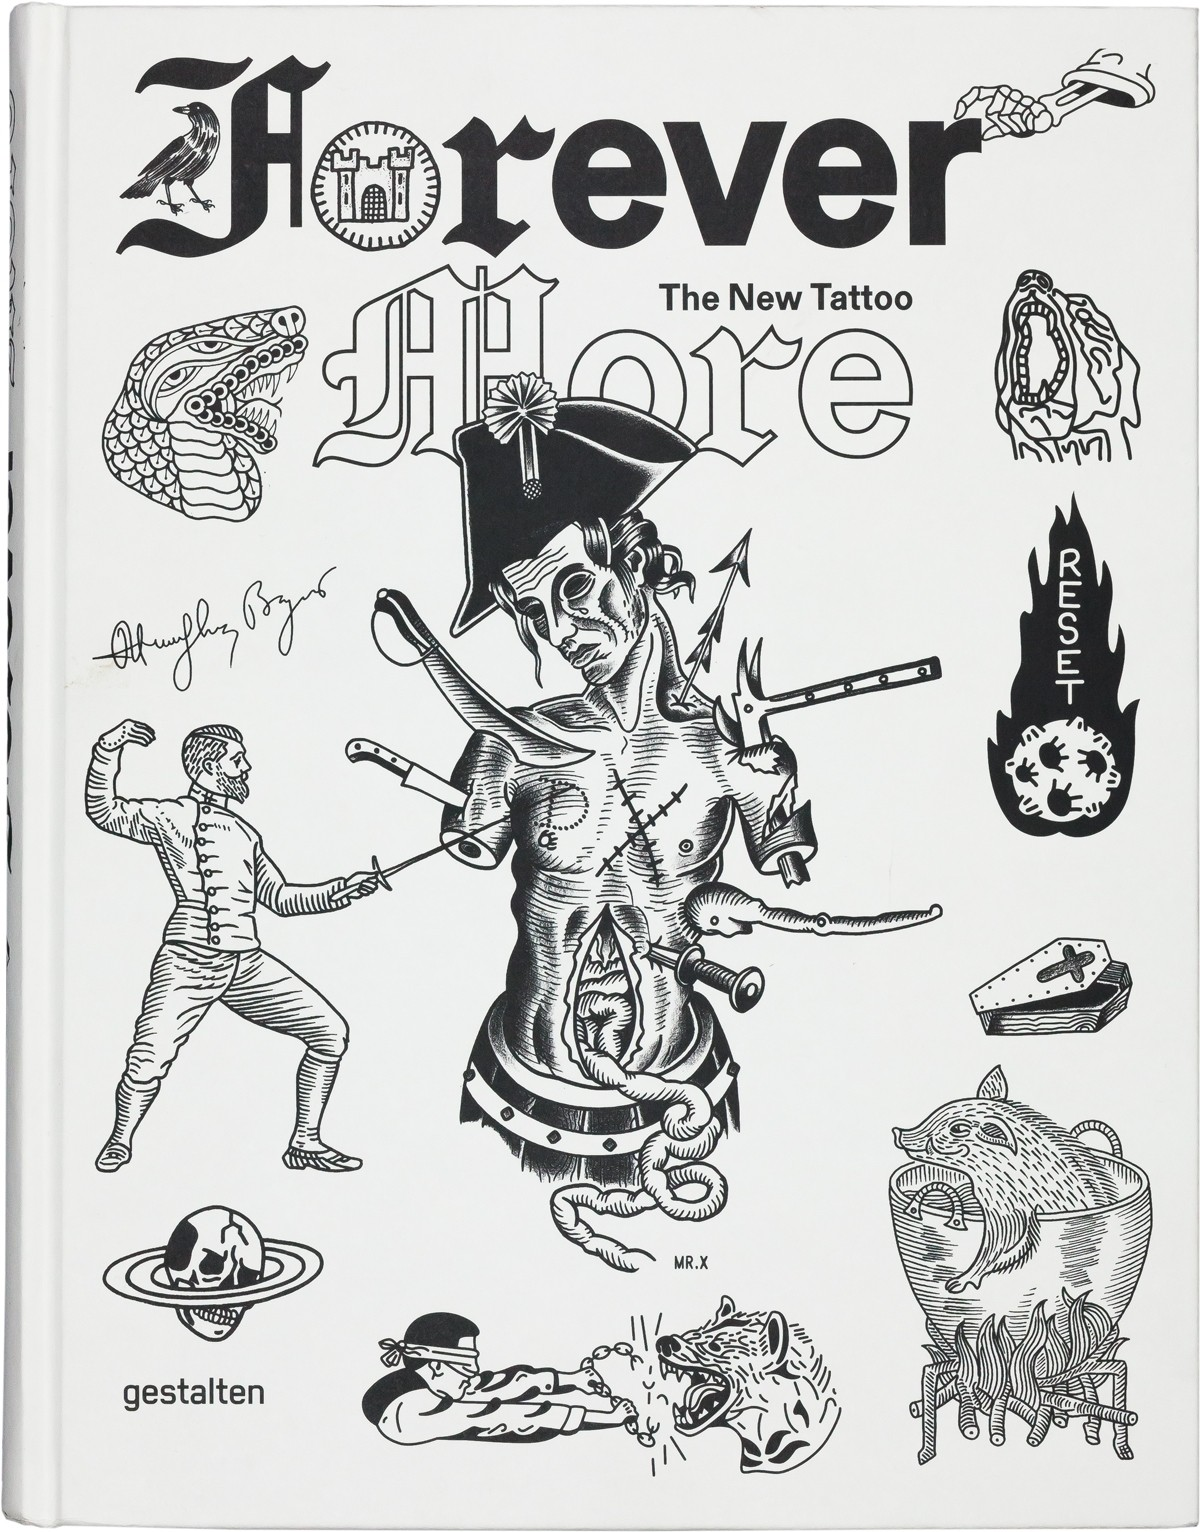 forevermore tattoo book gestalten cover front